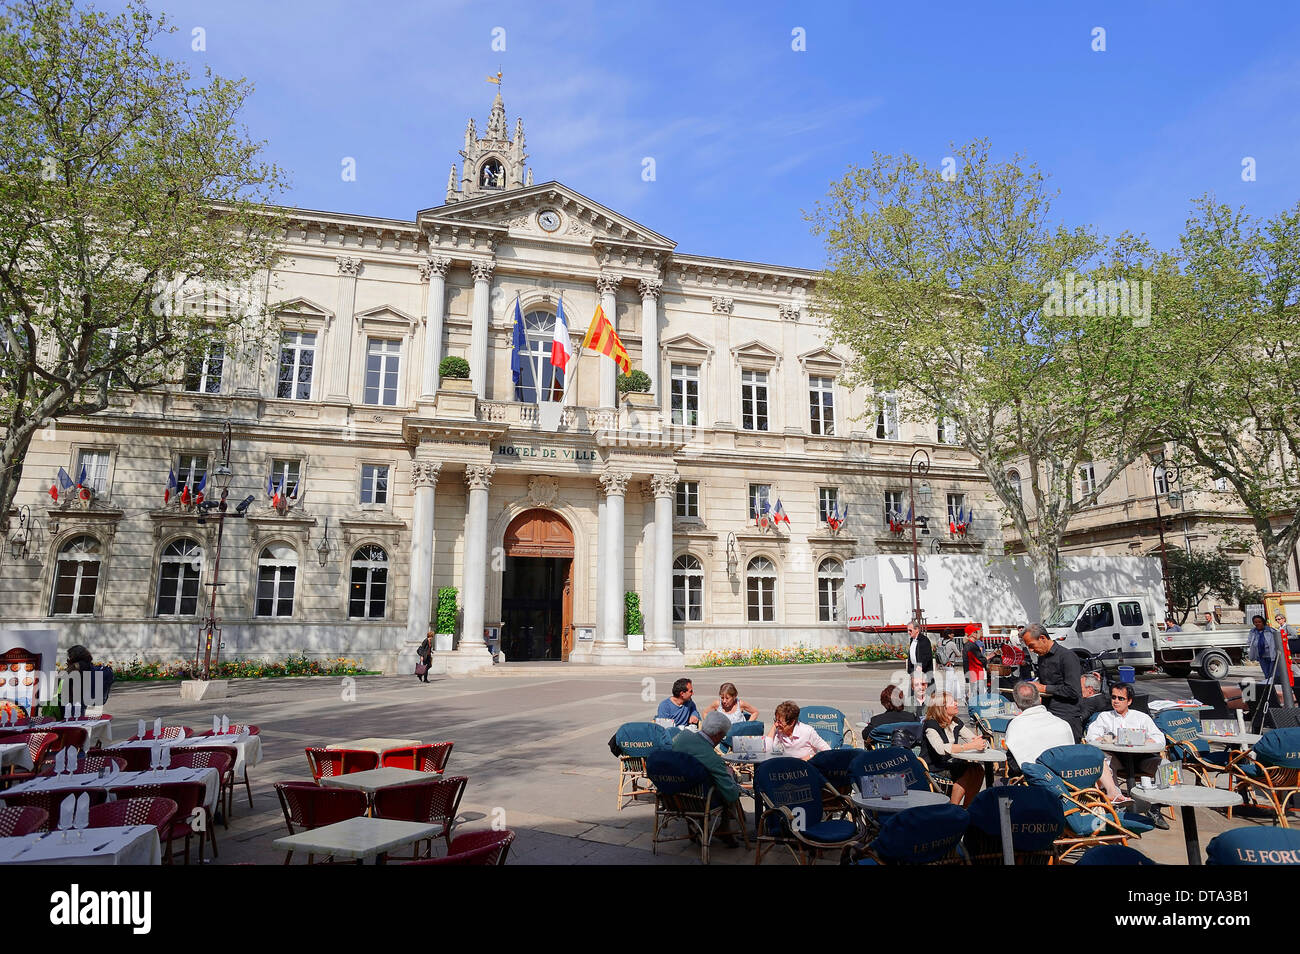 The city hall and a sidewalk cafe, Avignon, Vaucluse, Provence-Alpes-Cote d'Azur, Southern France, France - Stock Image